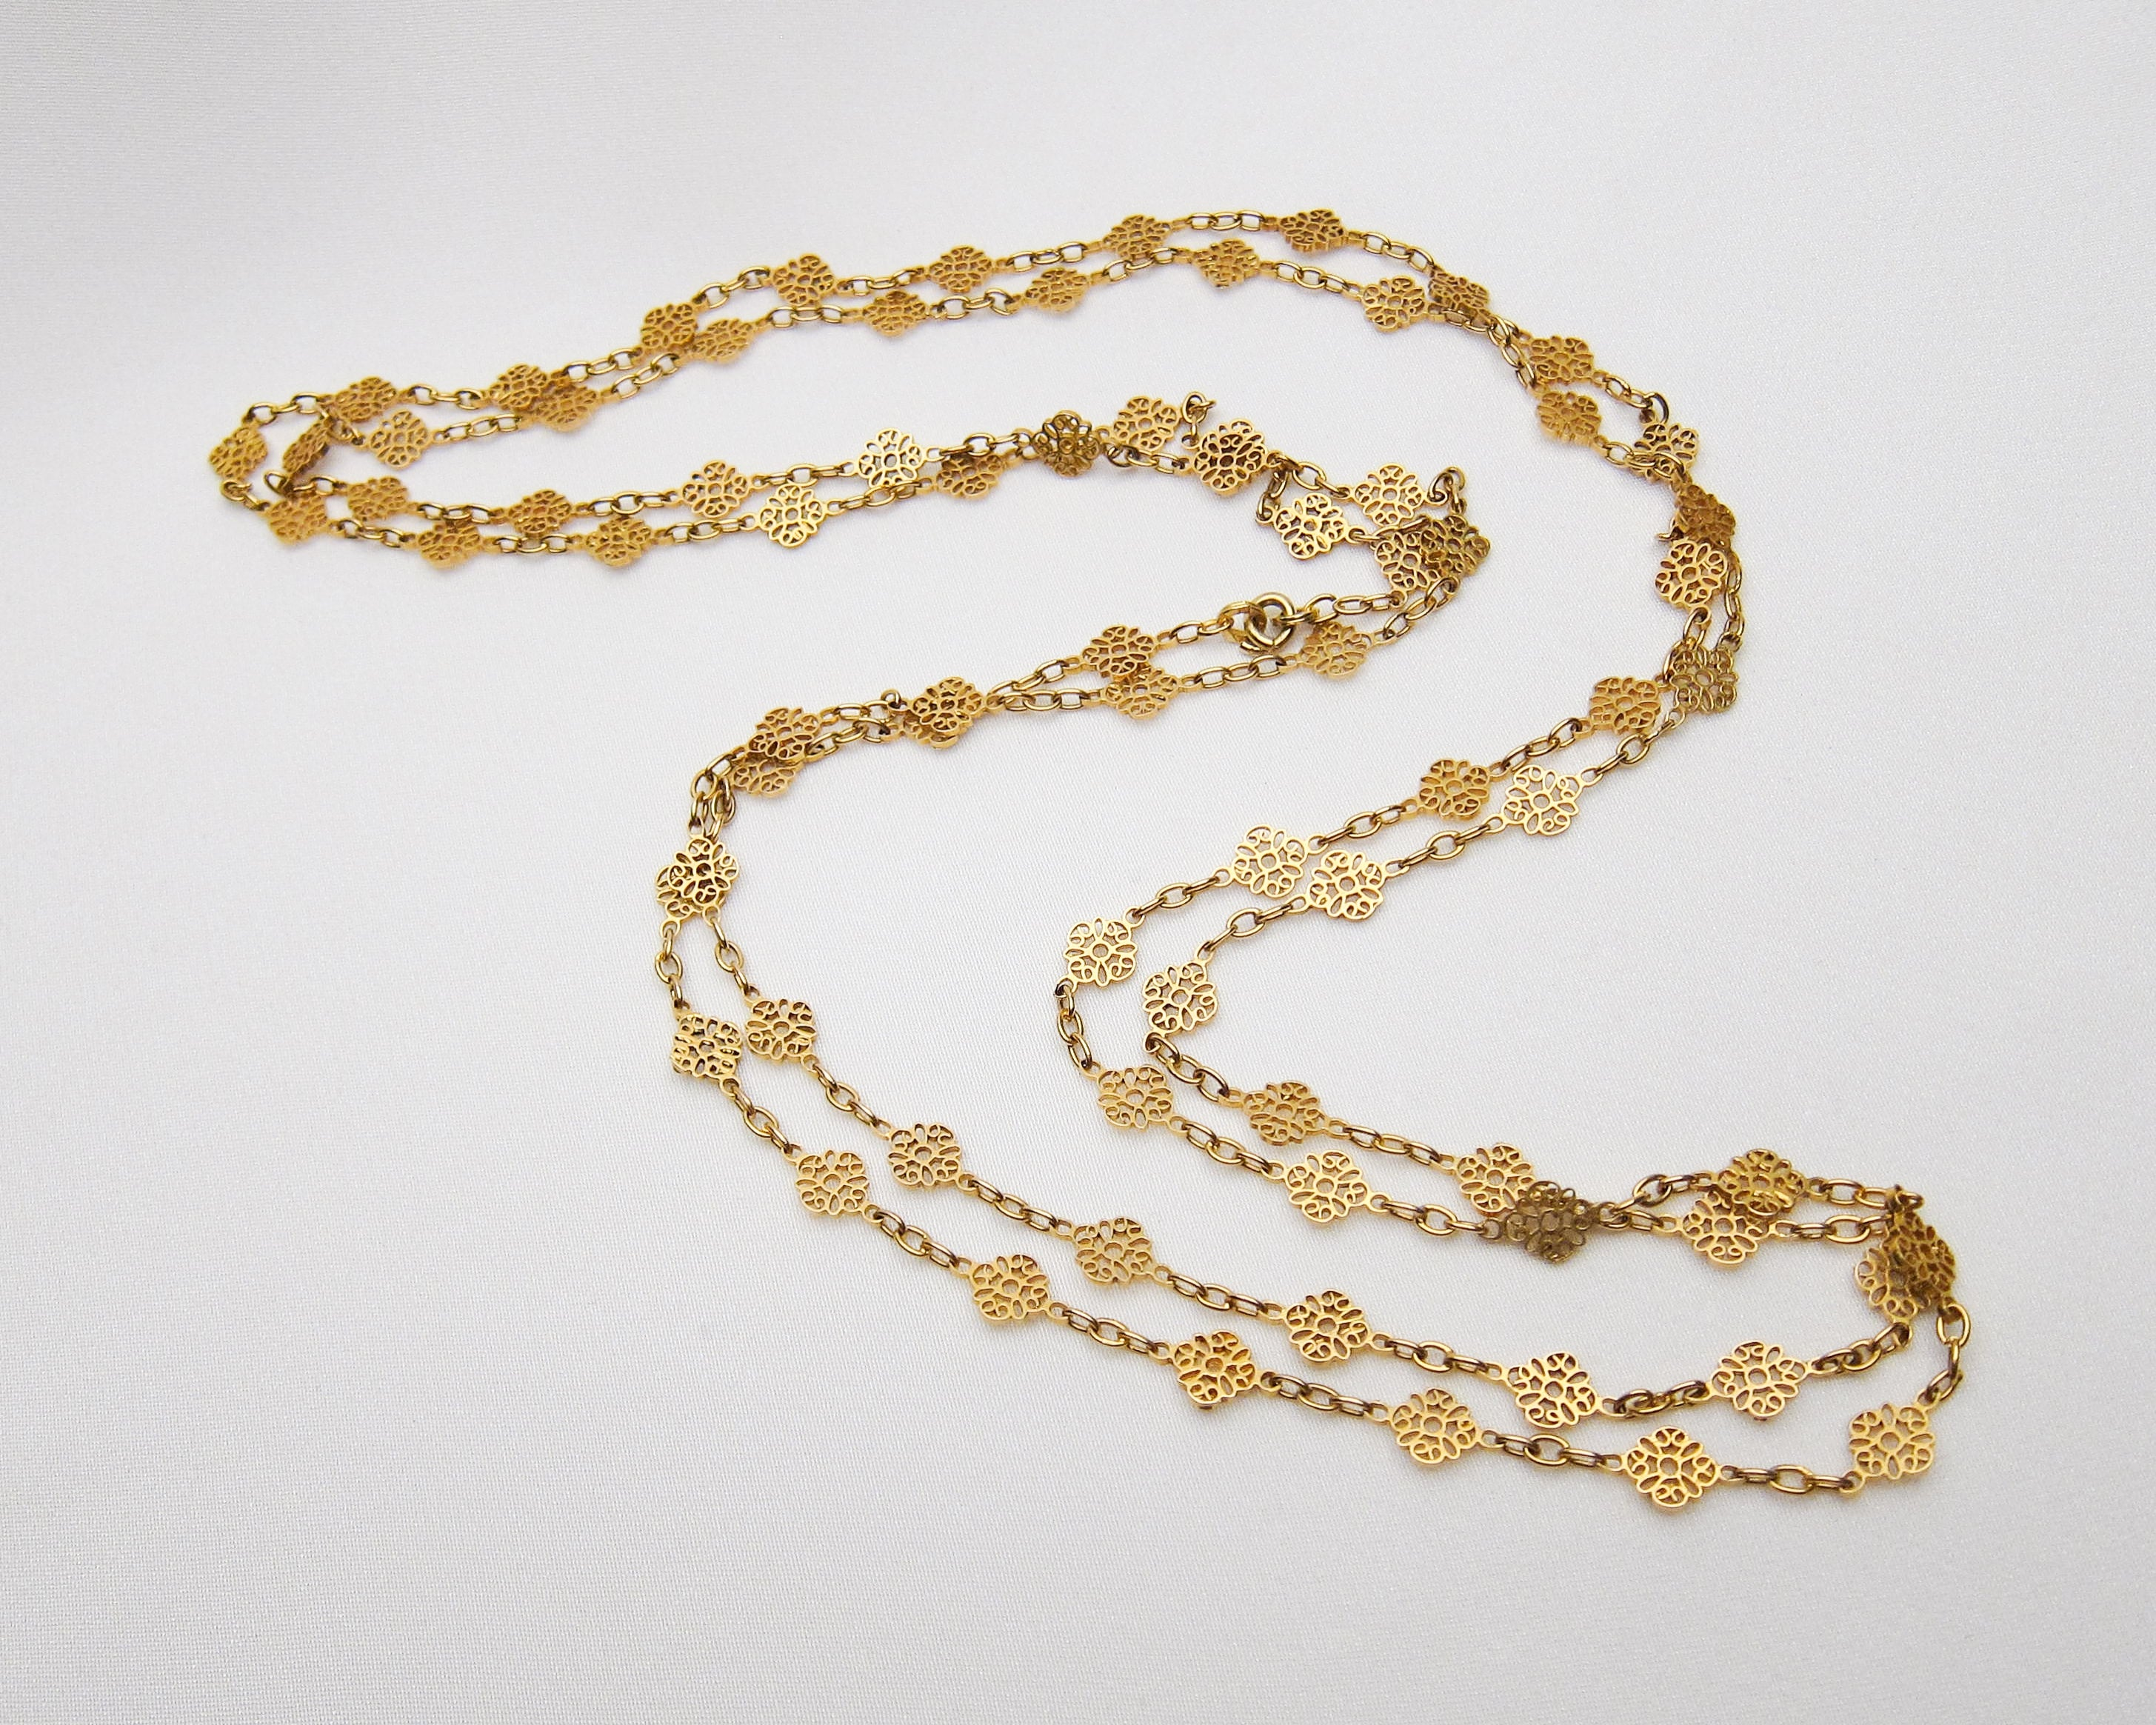 Victorian 18KT Gold Ornate Chain